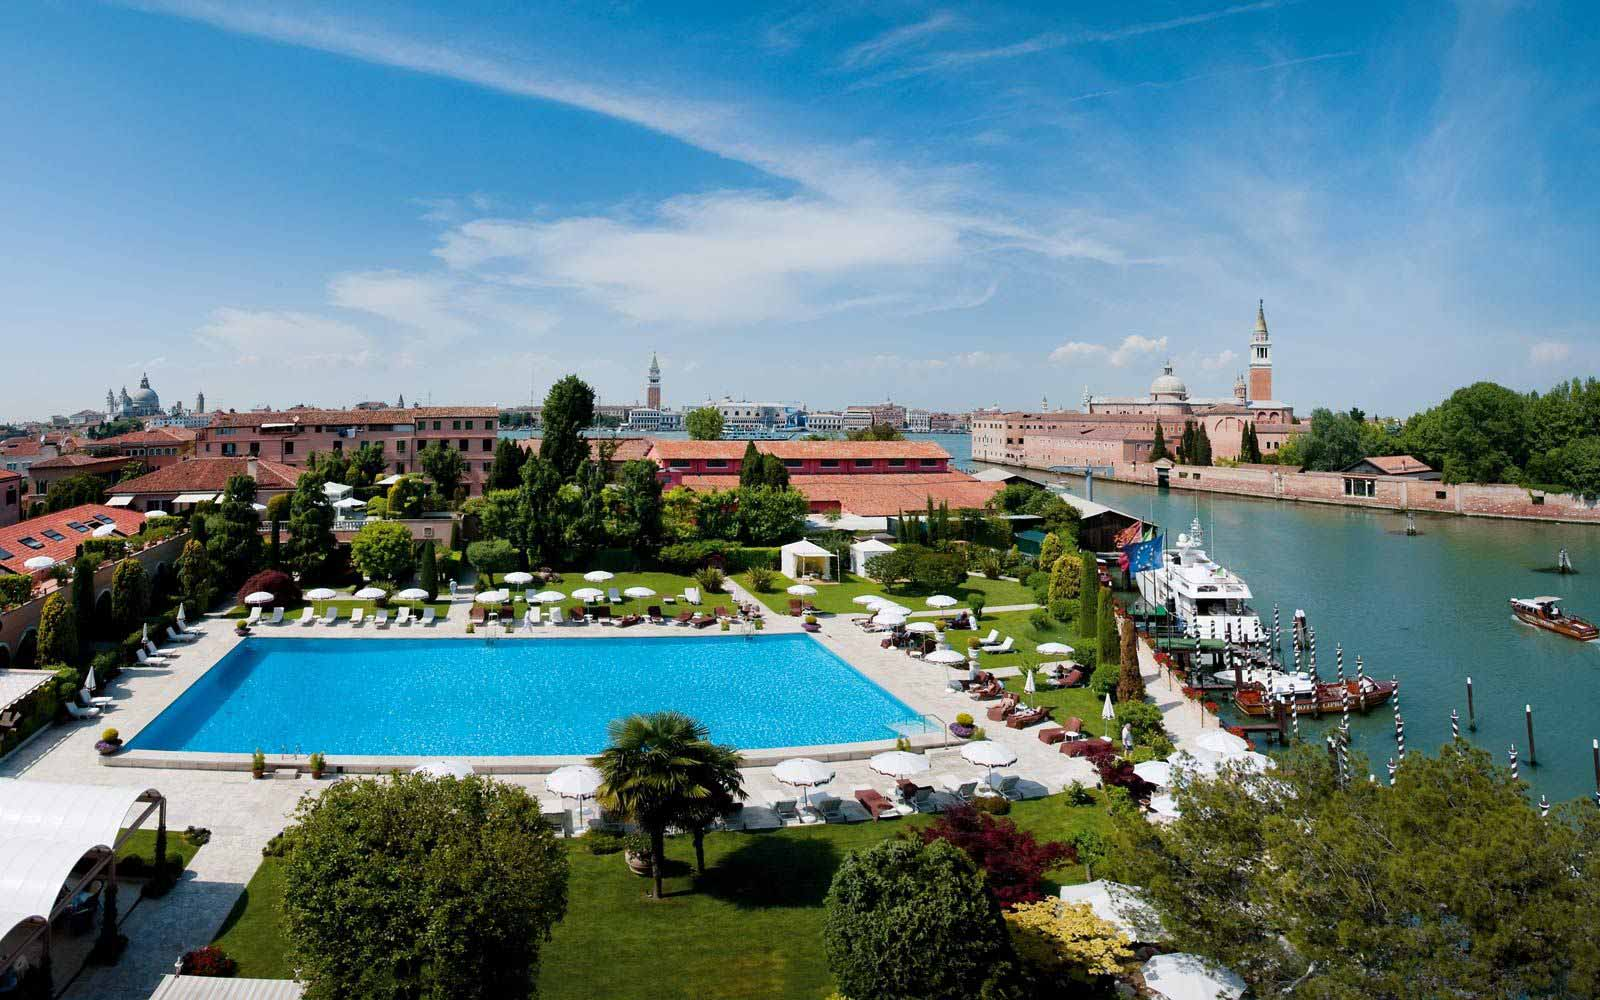 Pool at Belmond Hotel Cipriani